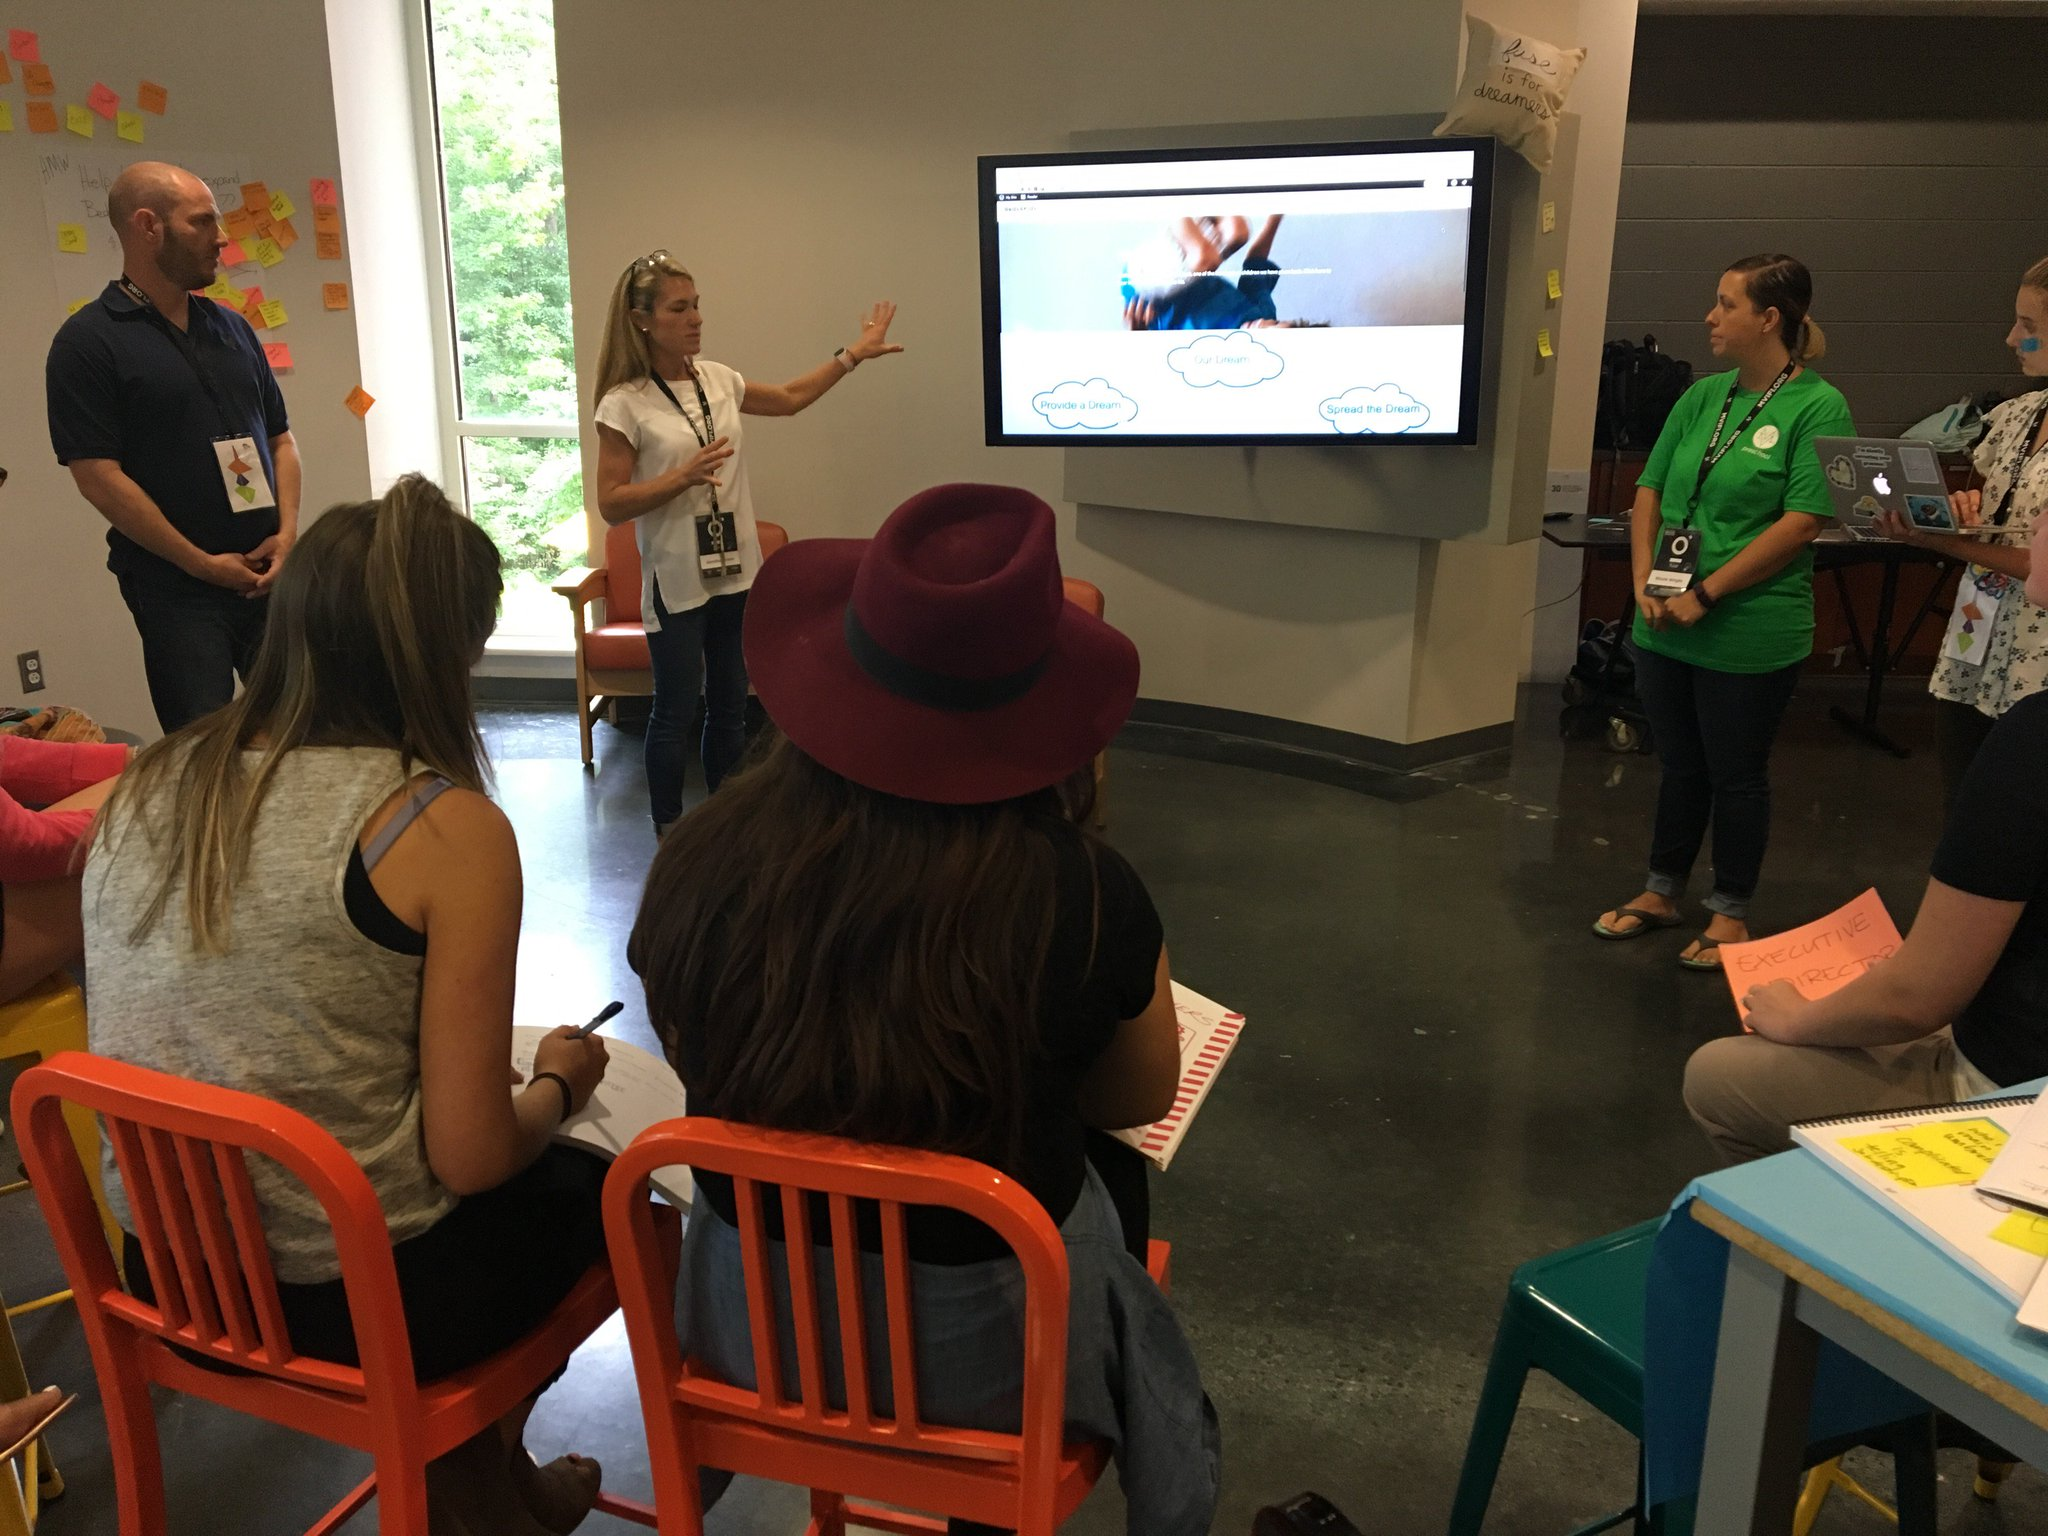 School work that matters now to design a better world! #fuse17 participants pitch iterated prototypes to @PlywoodPeople partners to use! https://t.co/P4FJd9qZky